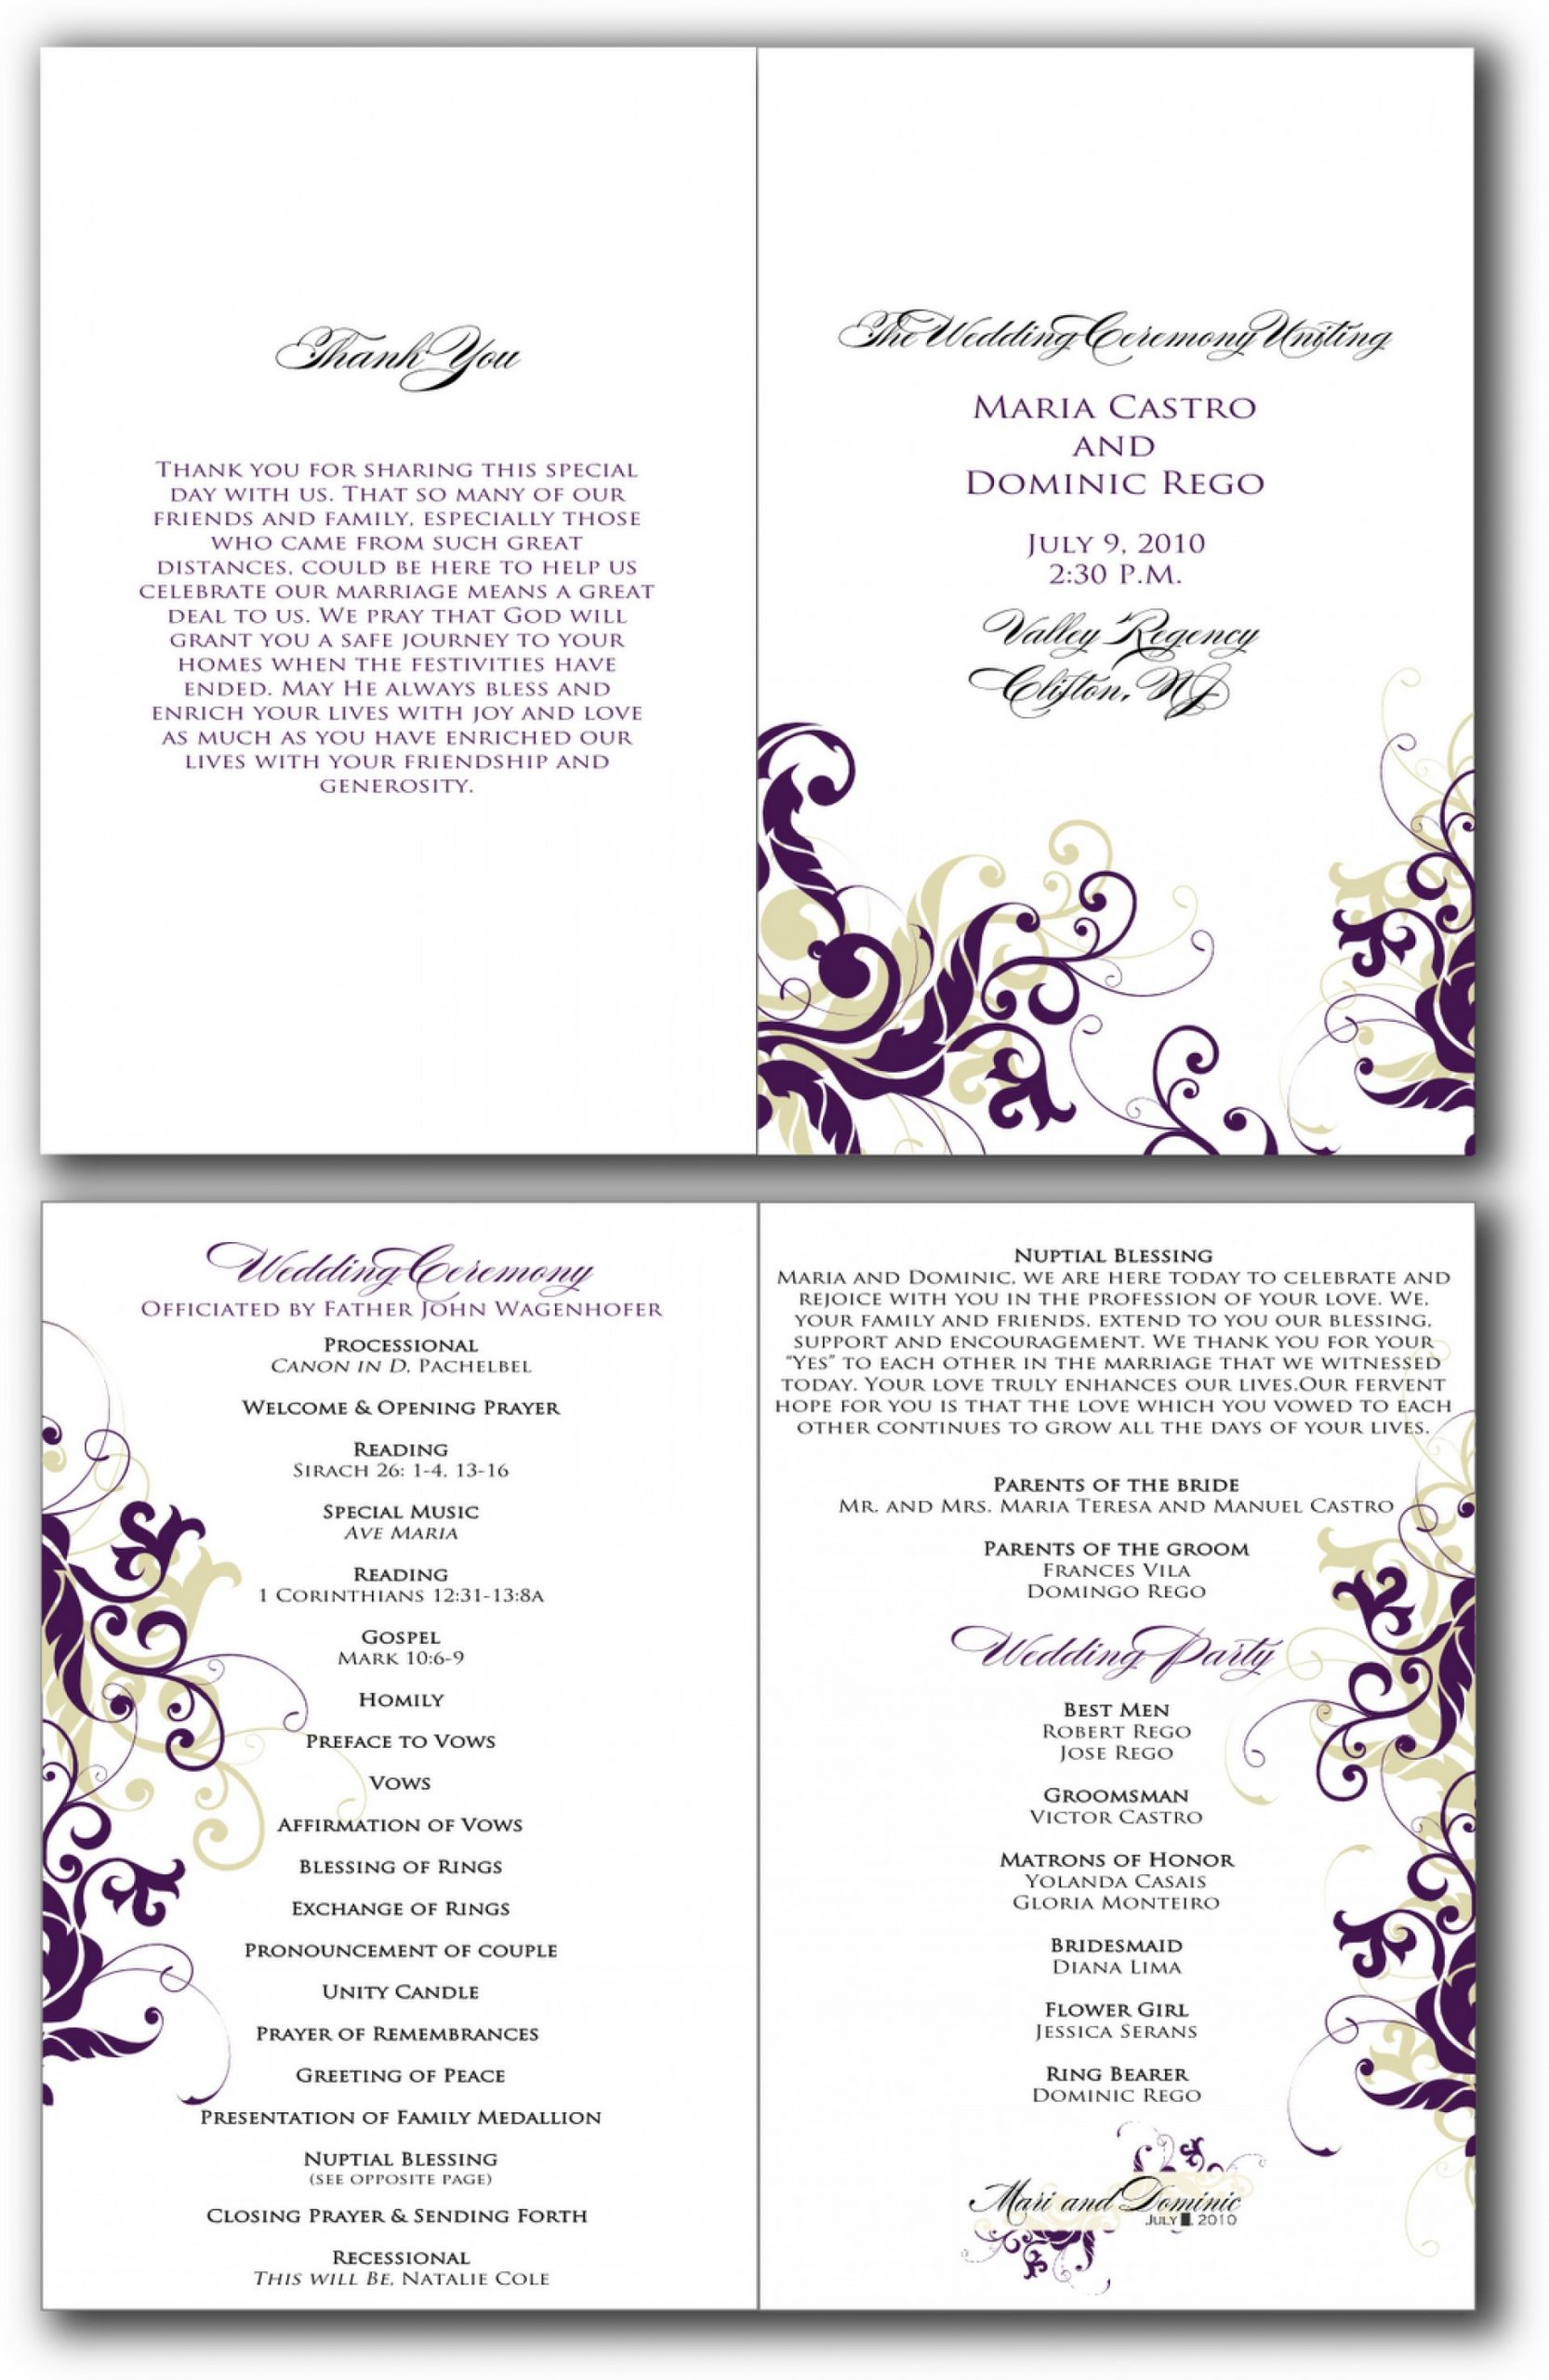 Birthday Party Program Template